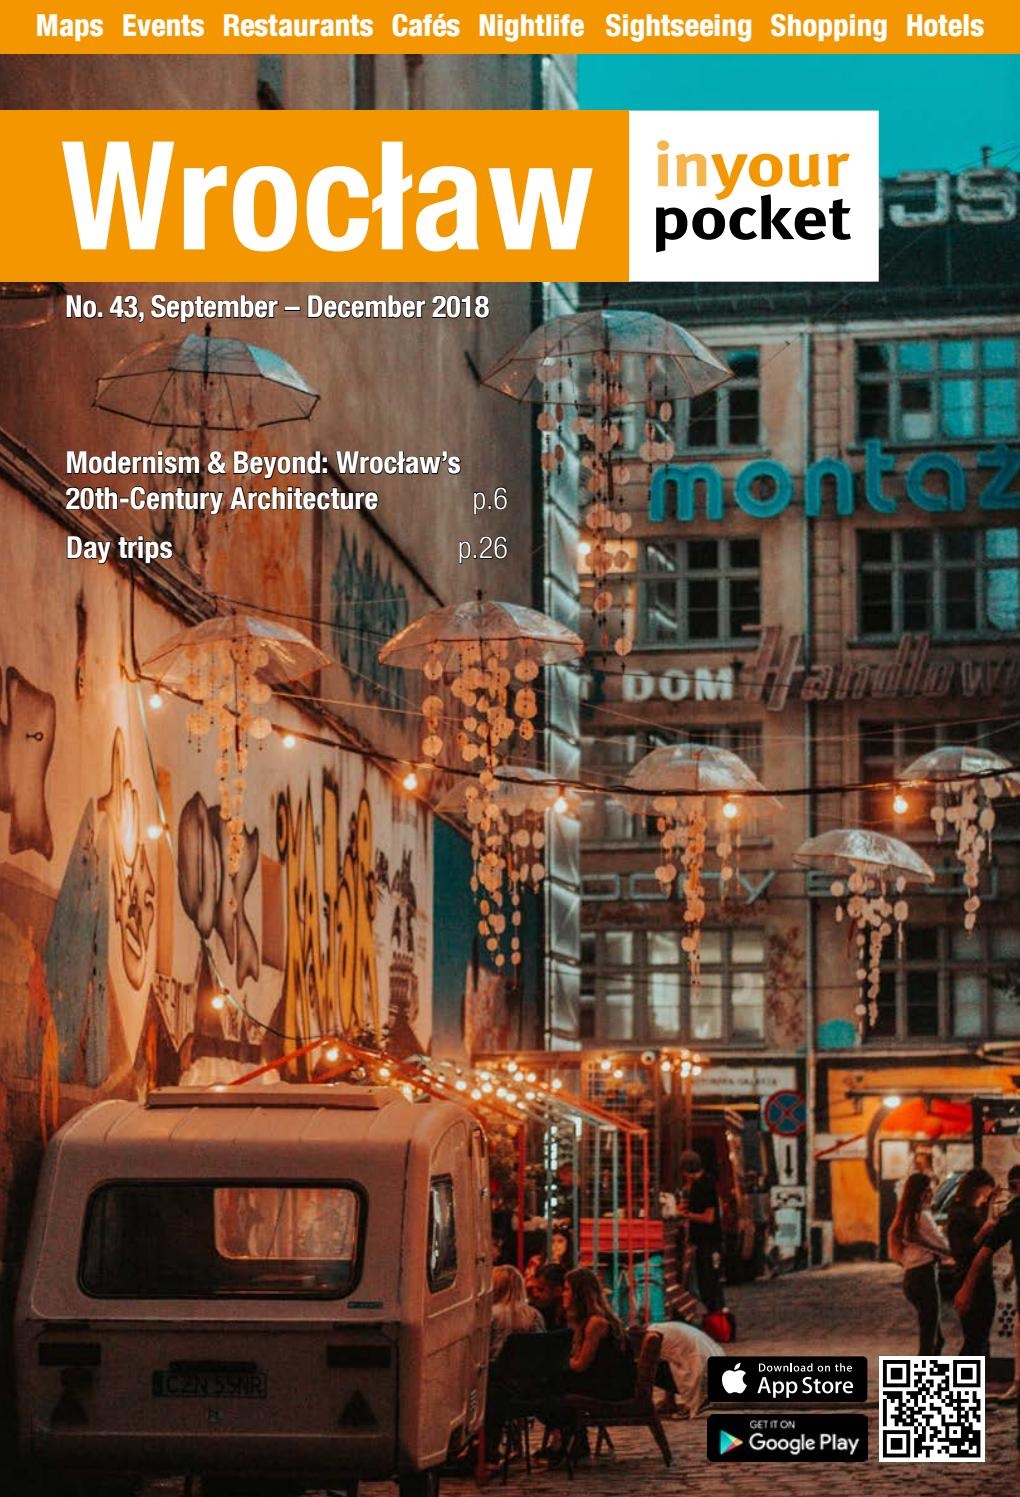 Wroclaw In Your Pocket by In Your Pocket - issuu 9270159c1e30